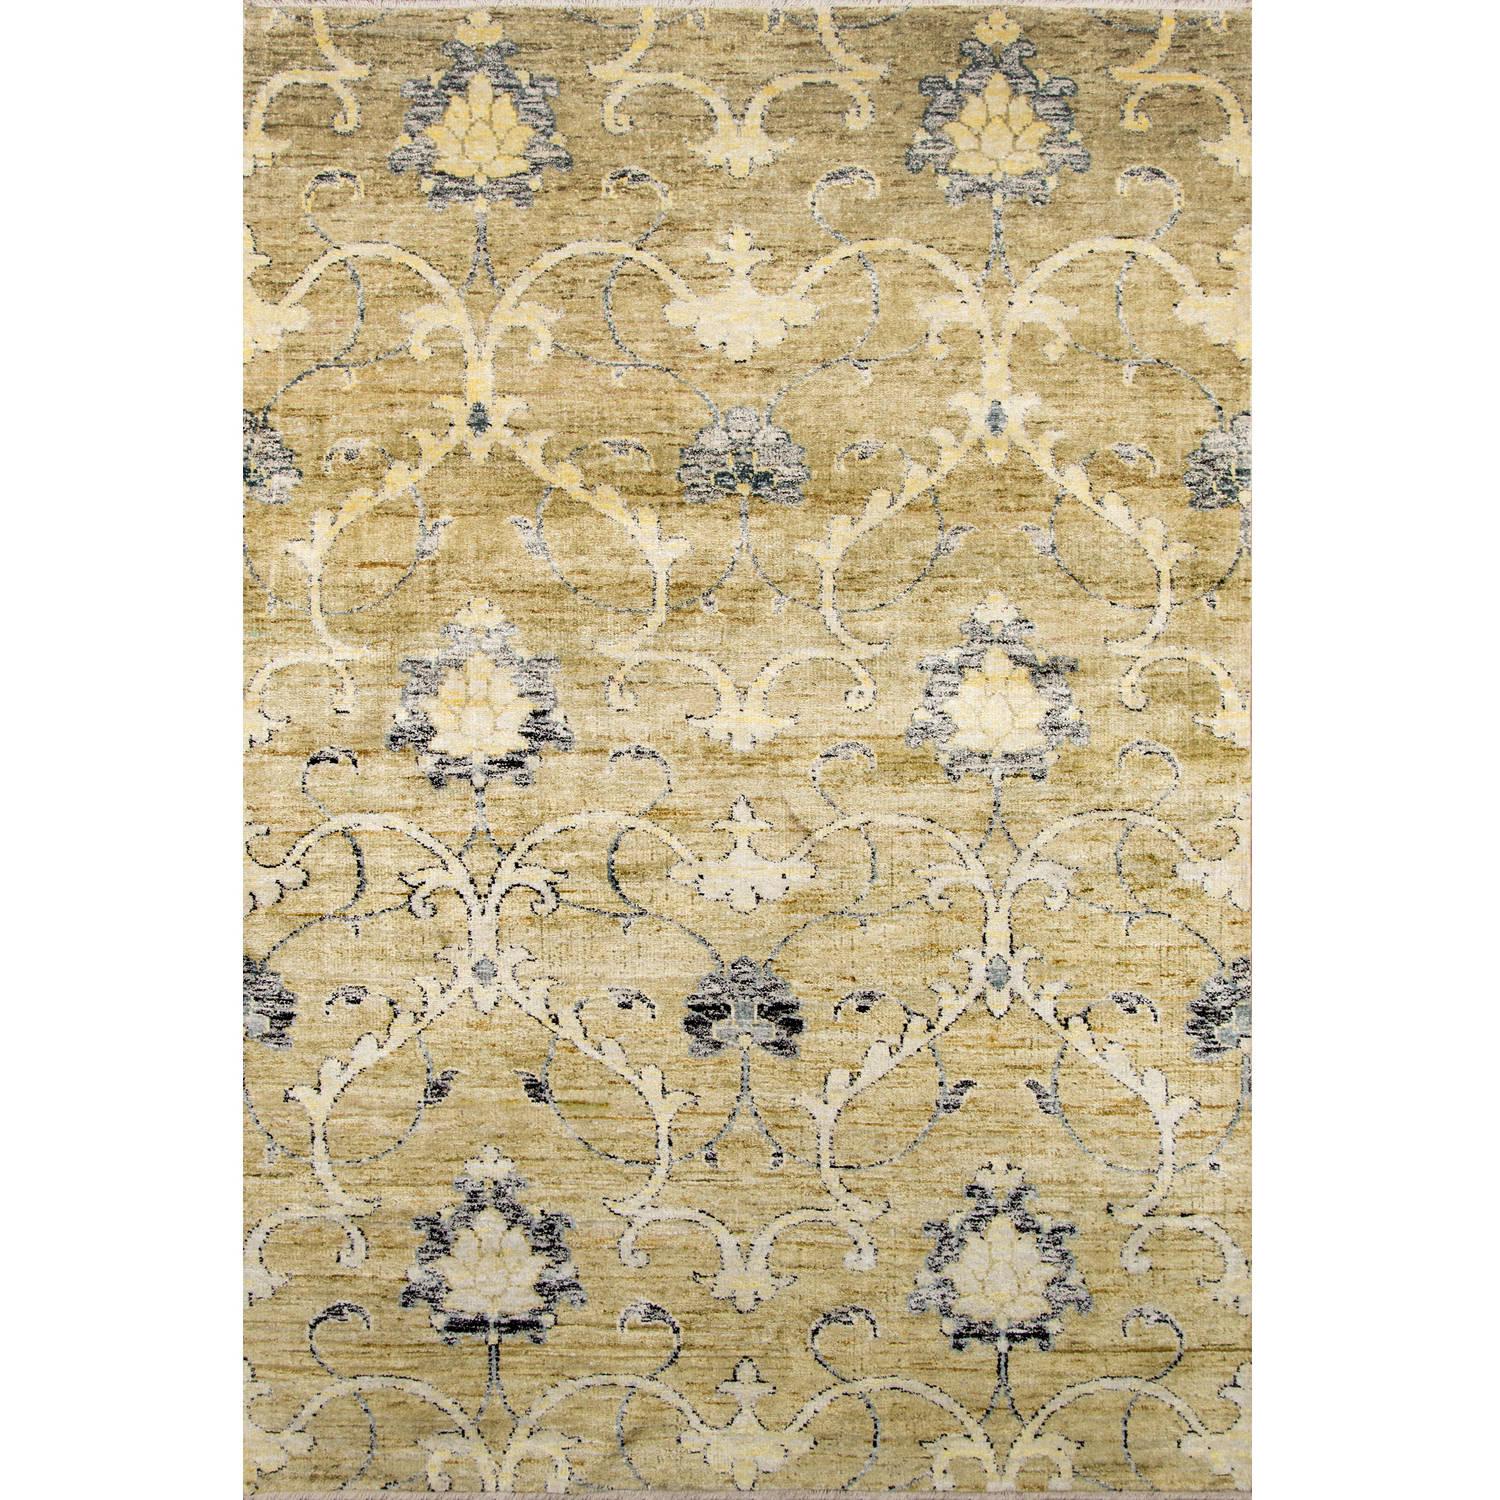 Momeni Artisan Tradition Area Rug by Momeni